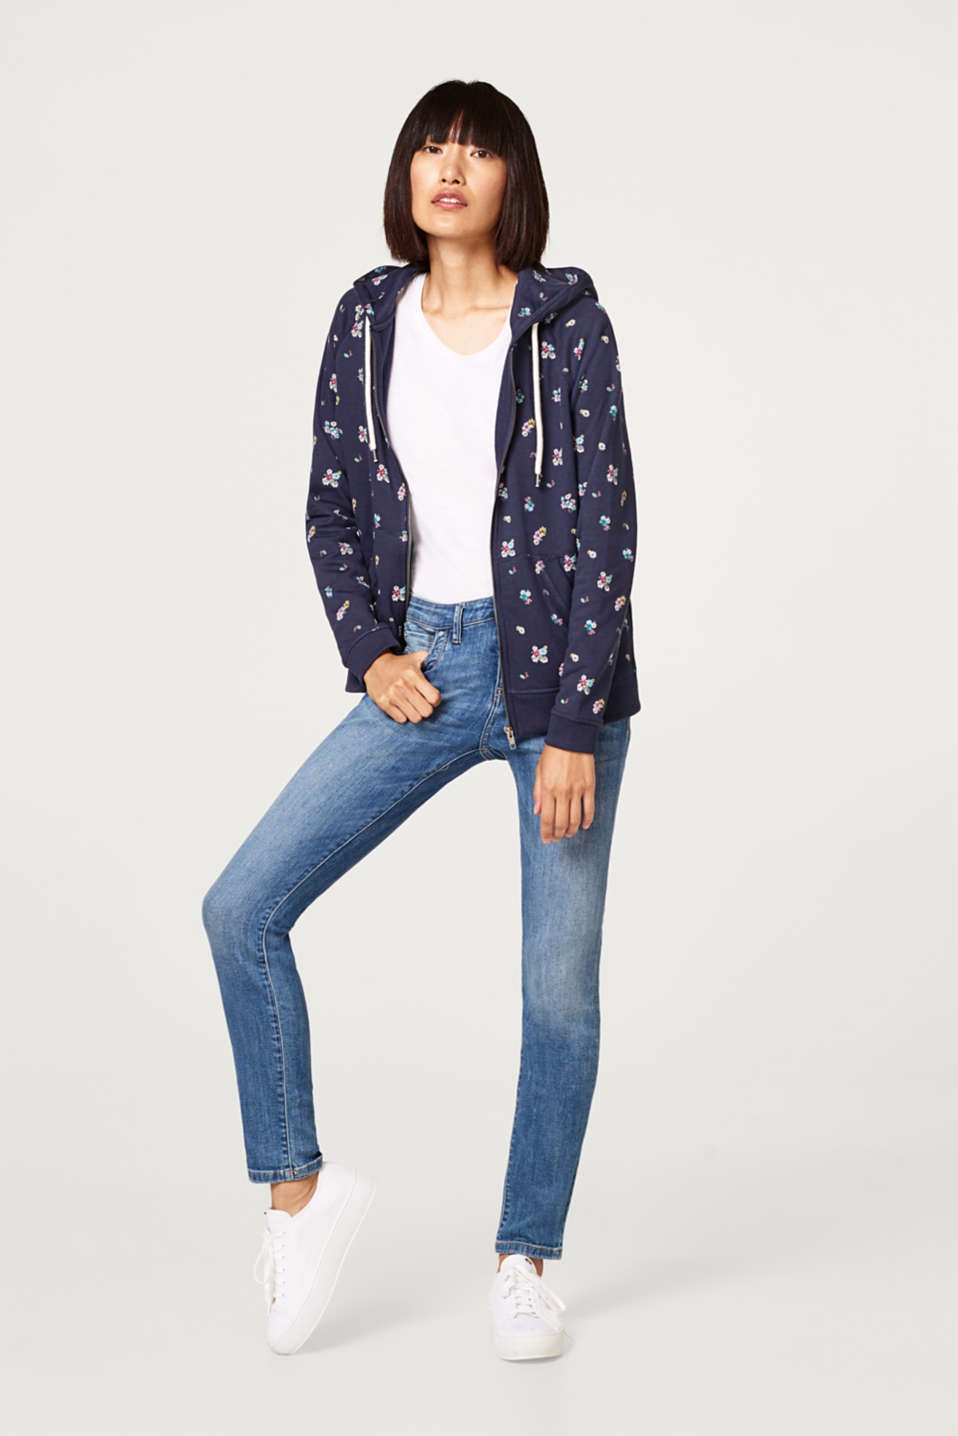 Sweatshirt fabric cardigan with a floral print